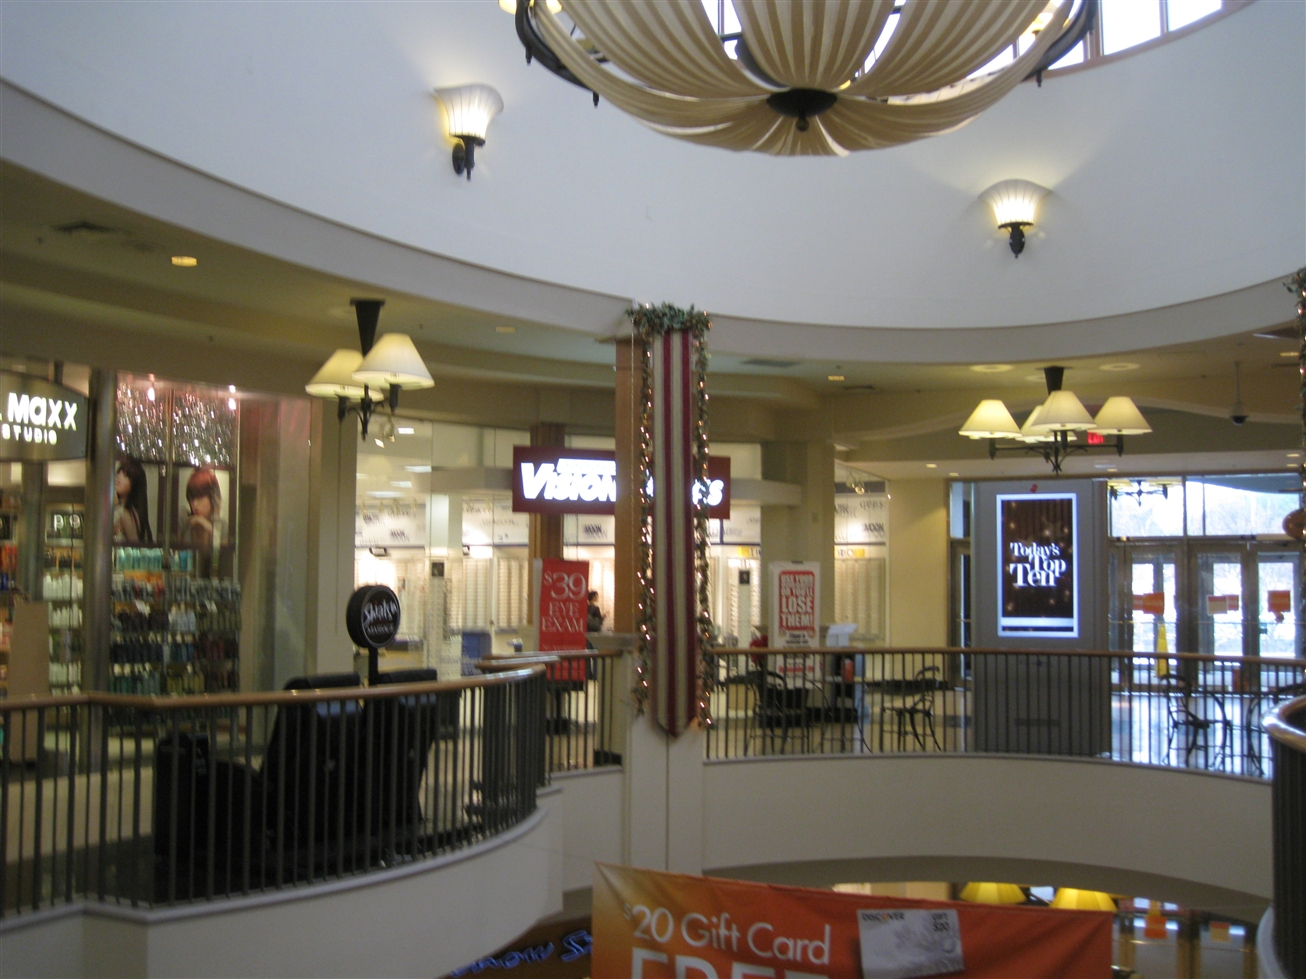 Aug 27, · The Perimeter Mall is in my opinion the best mall in the area for your average mall stores, including Dillard's, Macy's, Disney Store, etc. It is not of the same caliber, as say the Lenox Square Mall which is much more upscale, but the perimeter /5().